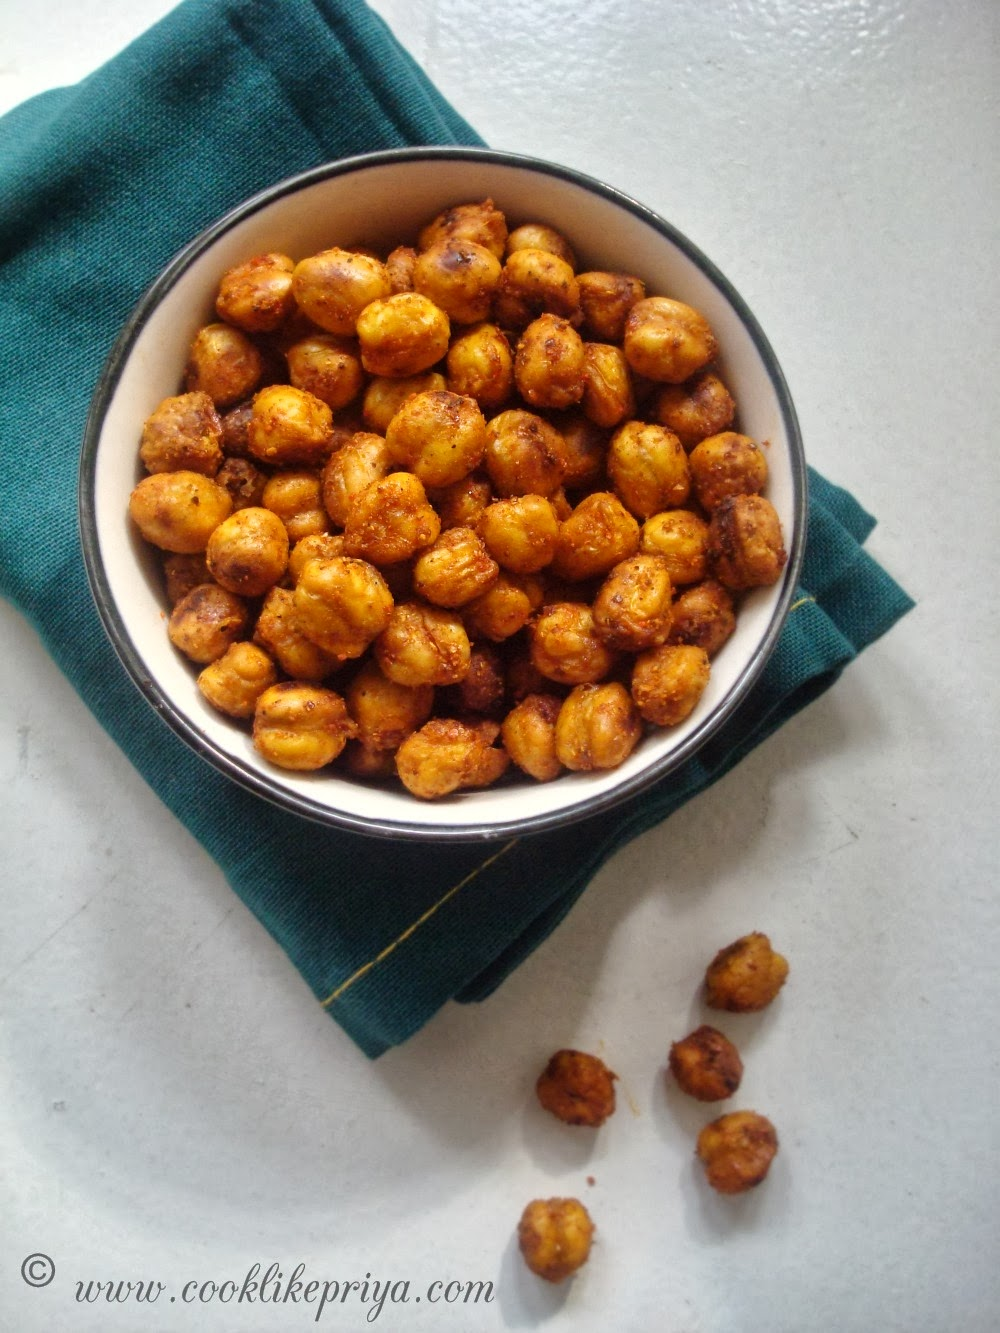 ... Indian Spicy Oven Roasted Chickpeas Recipe | Oven Baked Garbanzo Beans